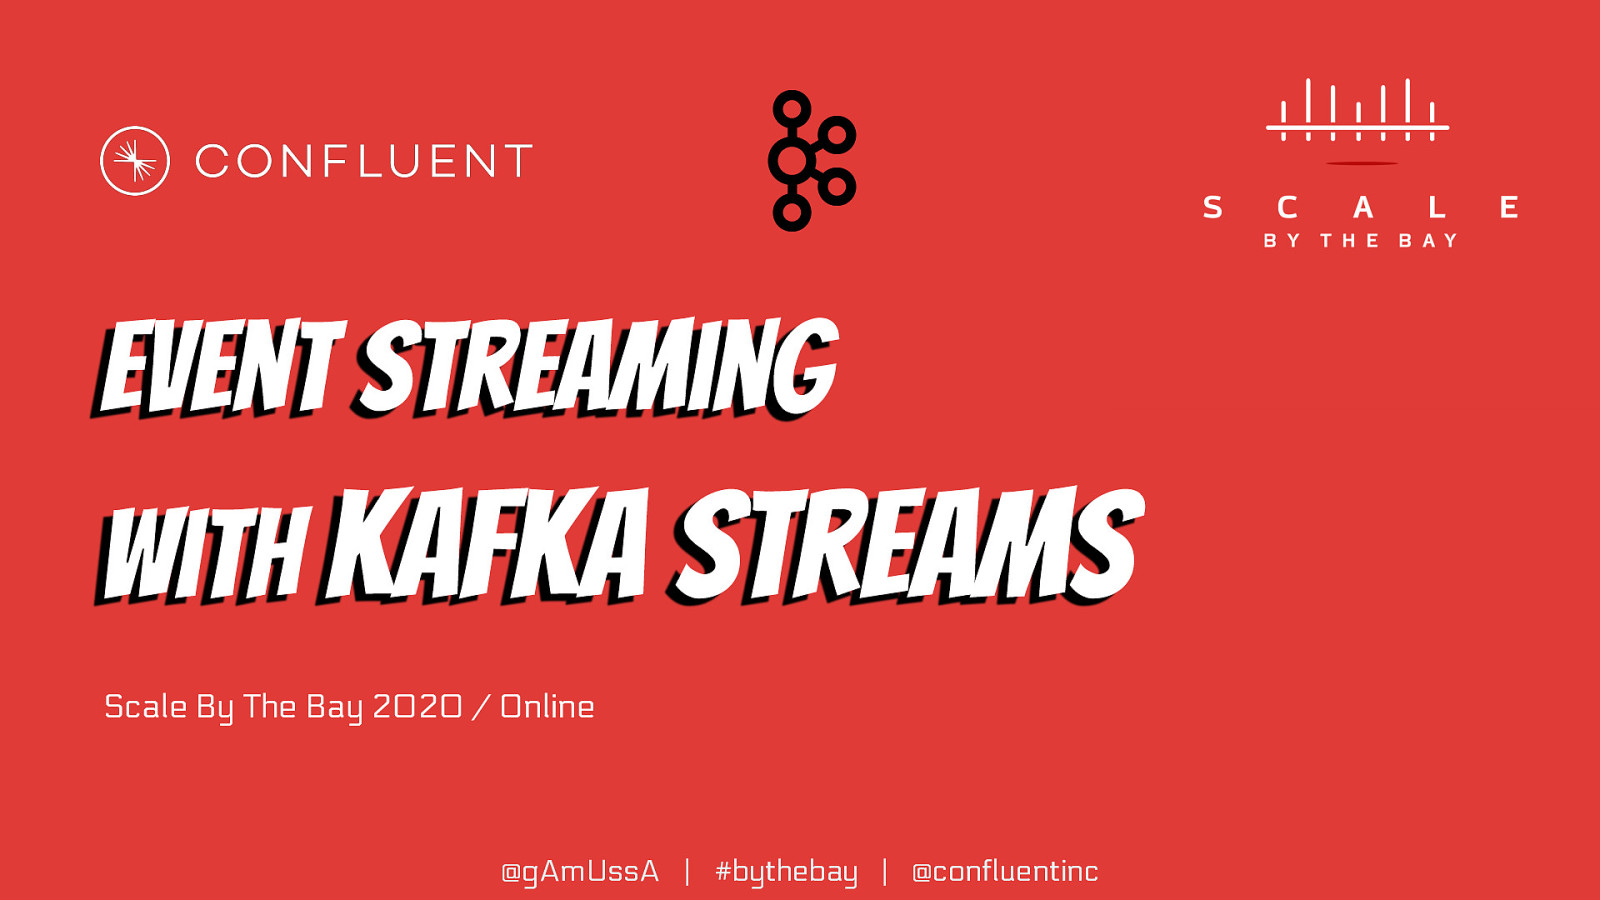 Event Streaming with Kafka Streams